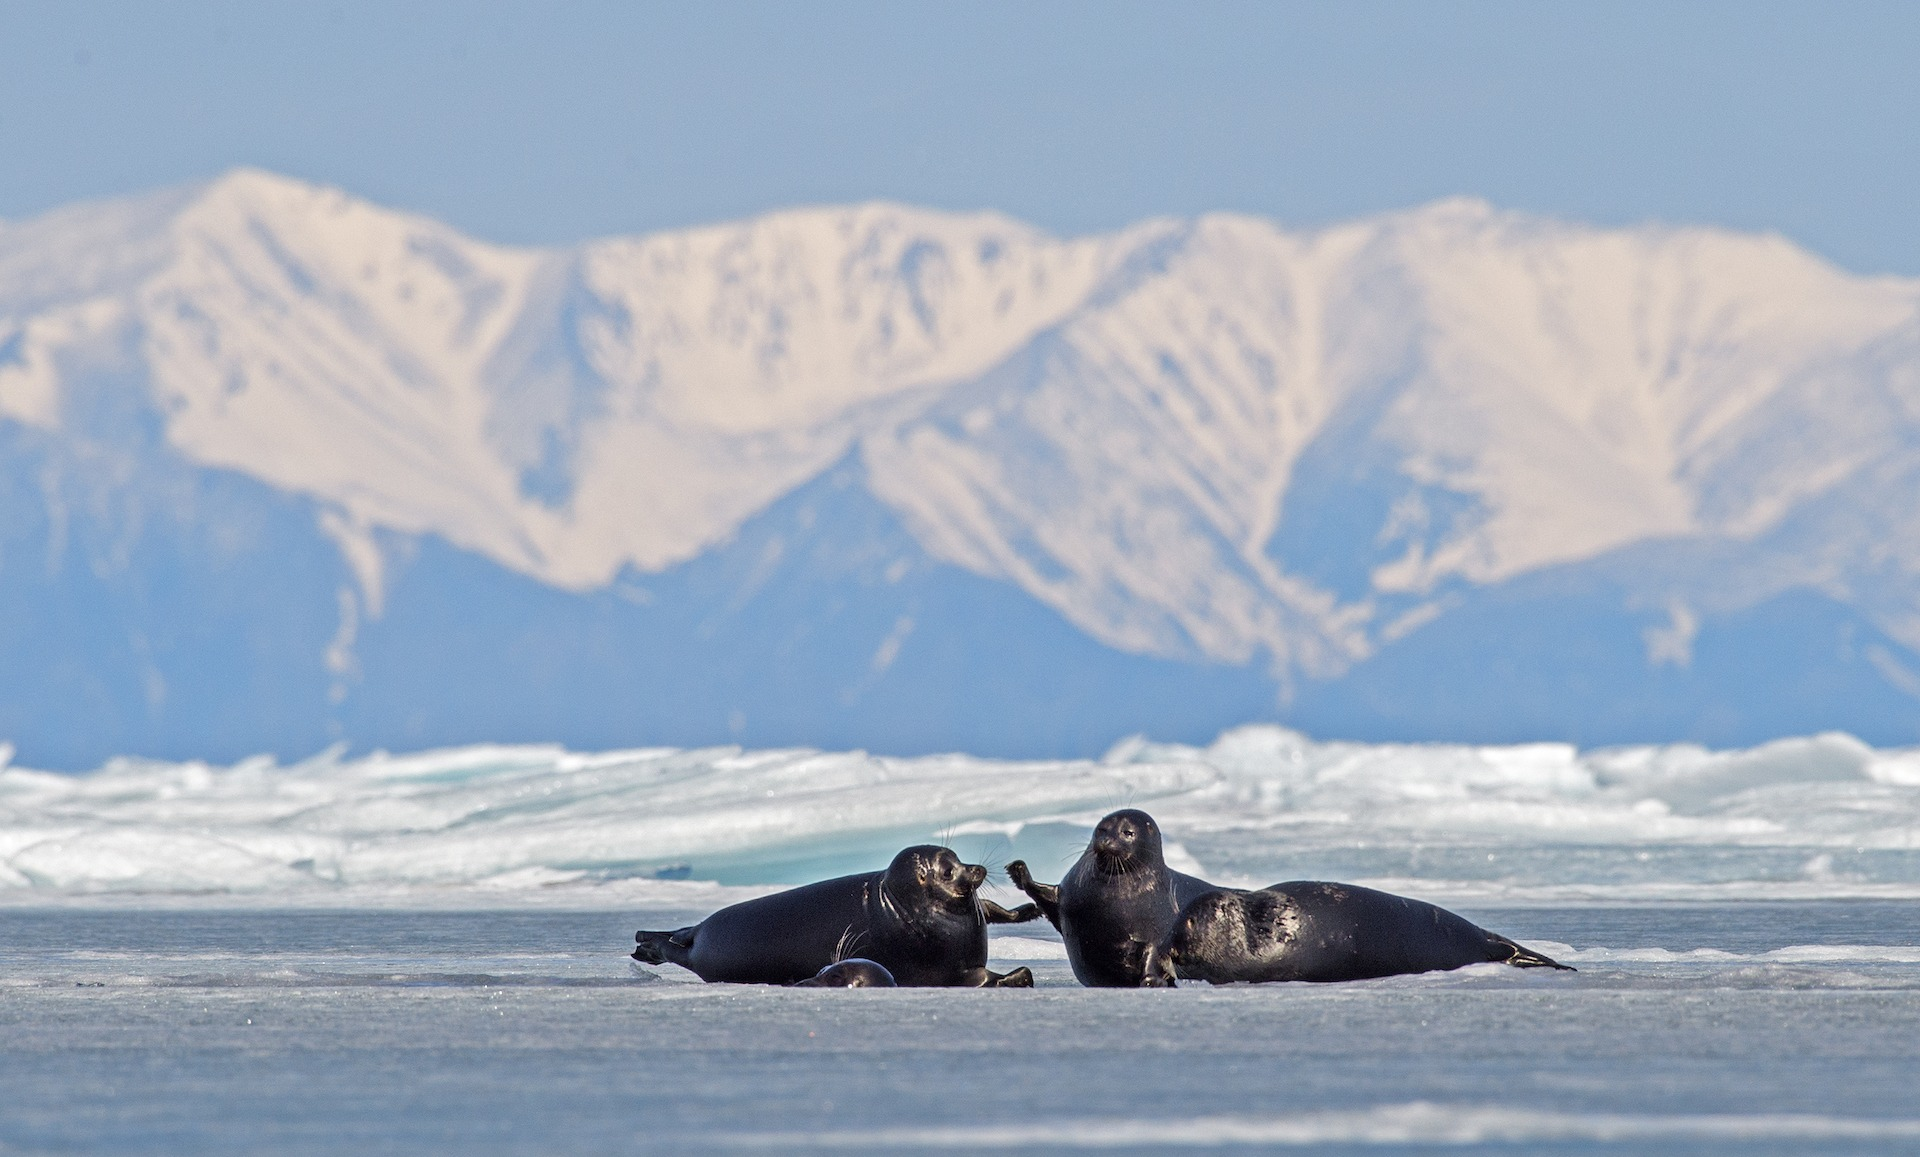 In winter, Nerpas use their teeth, claws, and head to create holes in the ice, so they can slip into the water if danger approaches. They also use the holes to surface for air during hunting dives.